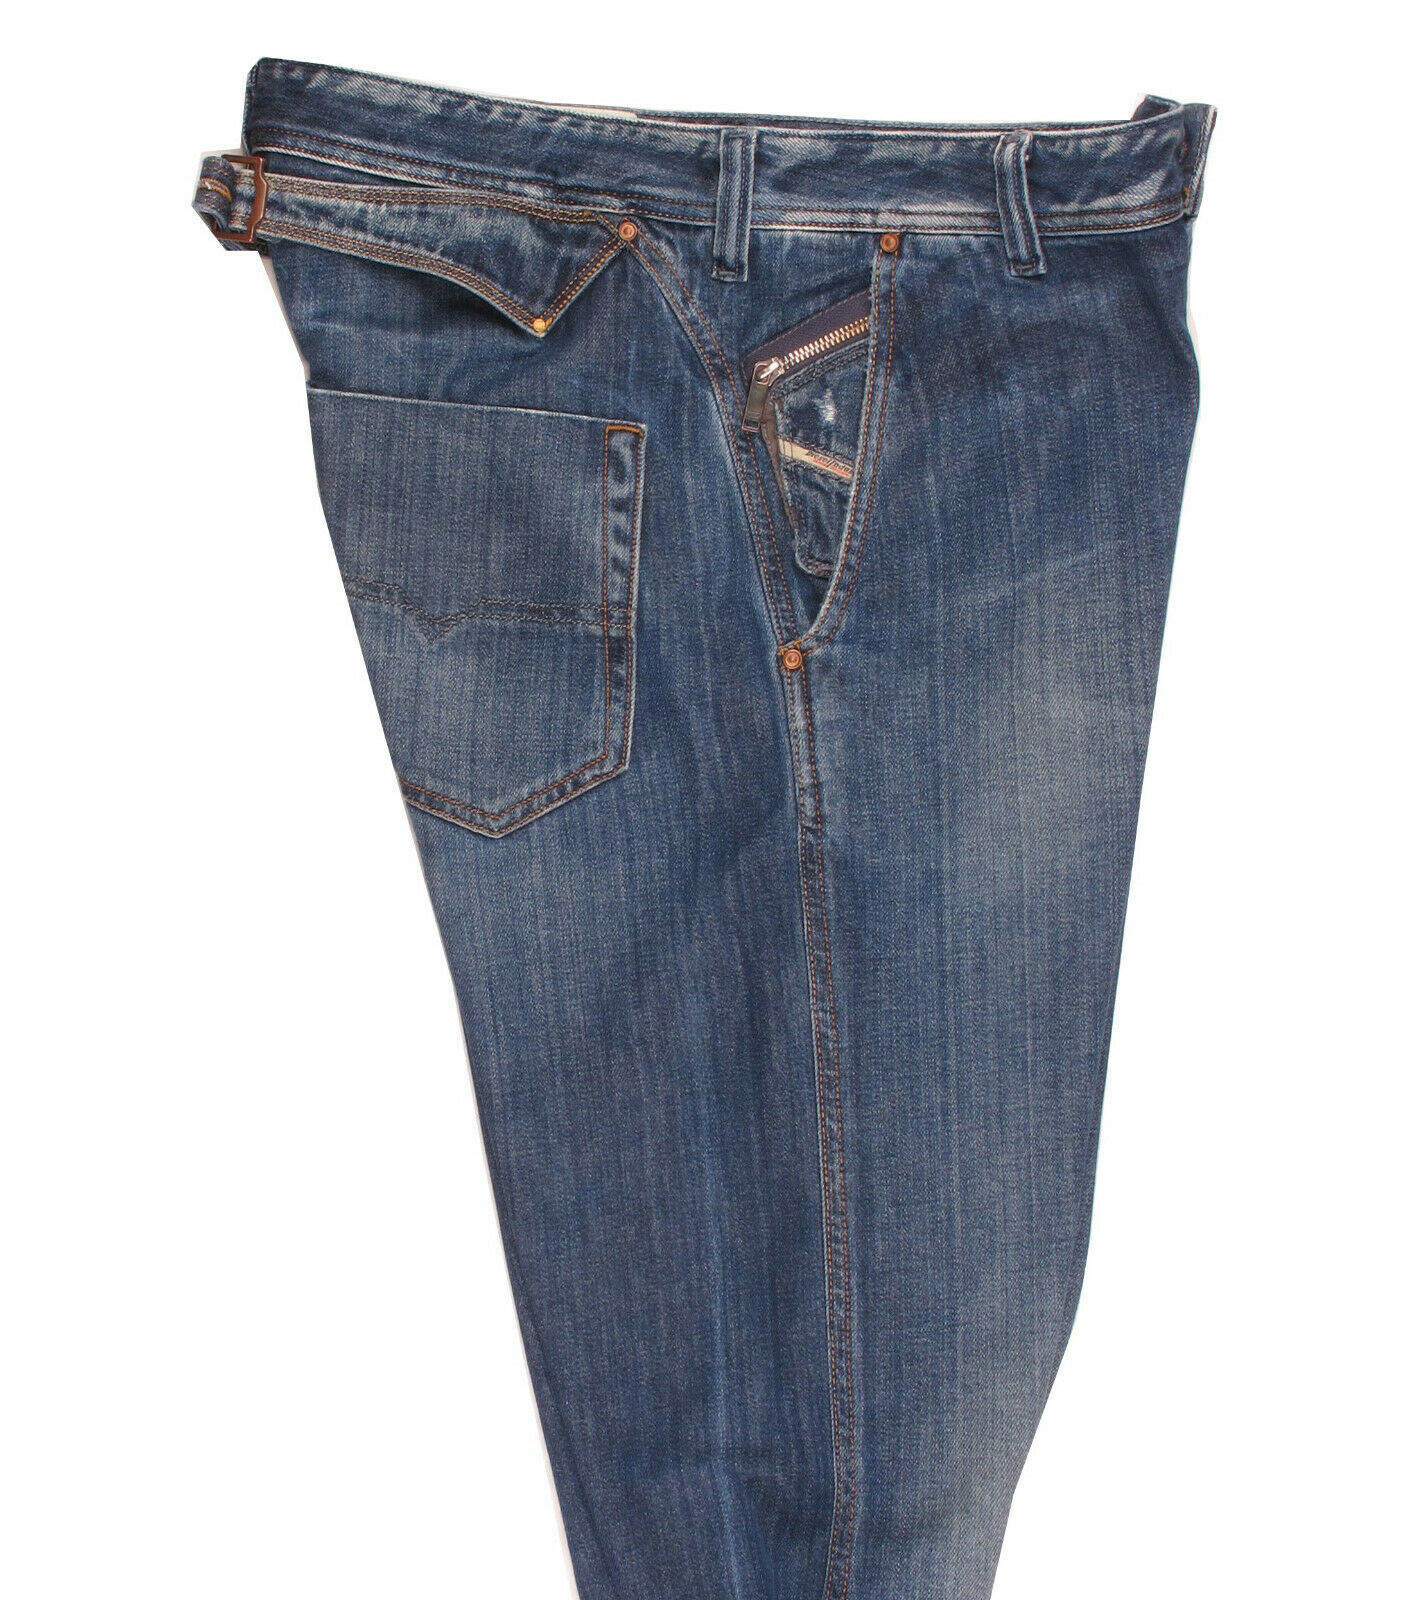 DIESEL PHEYO Wash 008AT Men's Loose Relaxed Fit Drop Credch Jeans Denim W33 L30